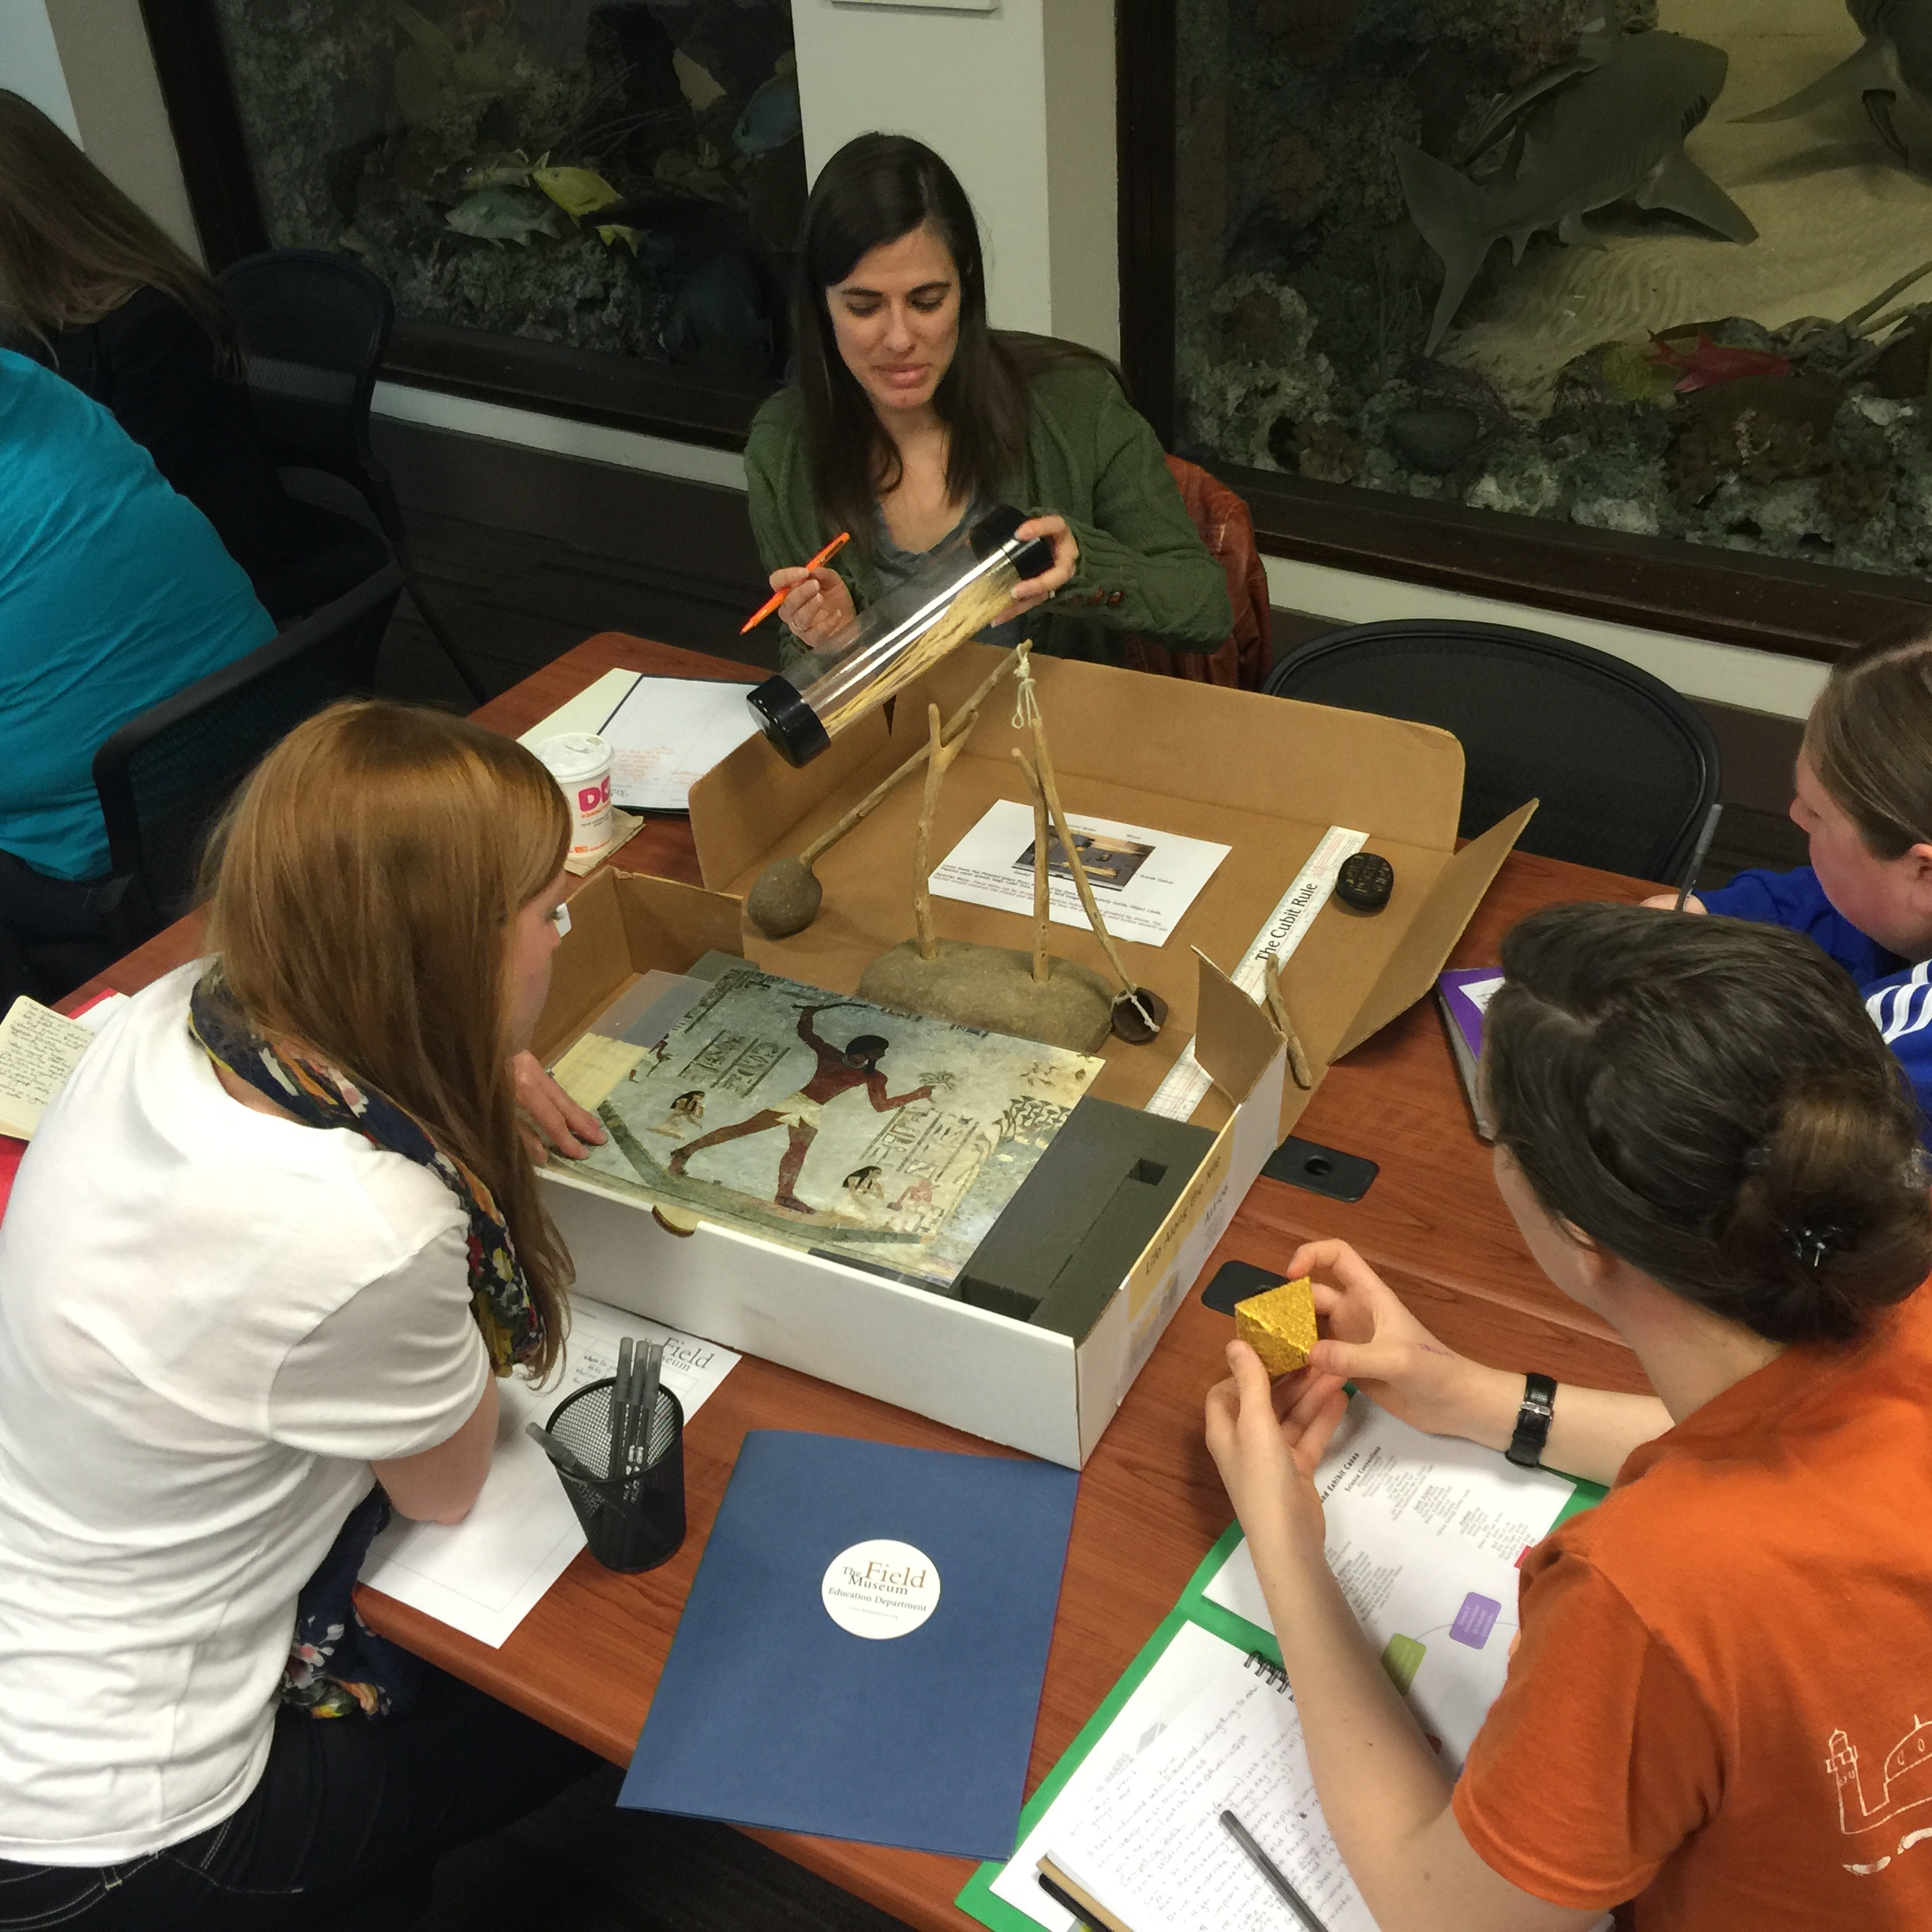 Investigating ArtiFACTs: Social Studies Professional Development at The Field